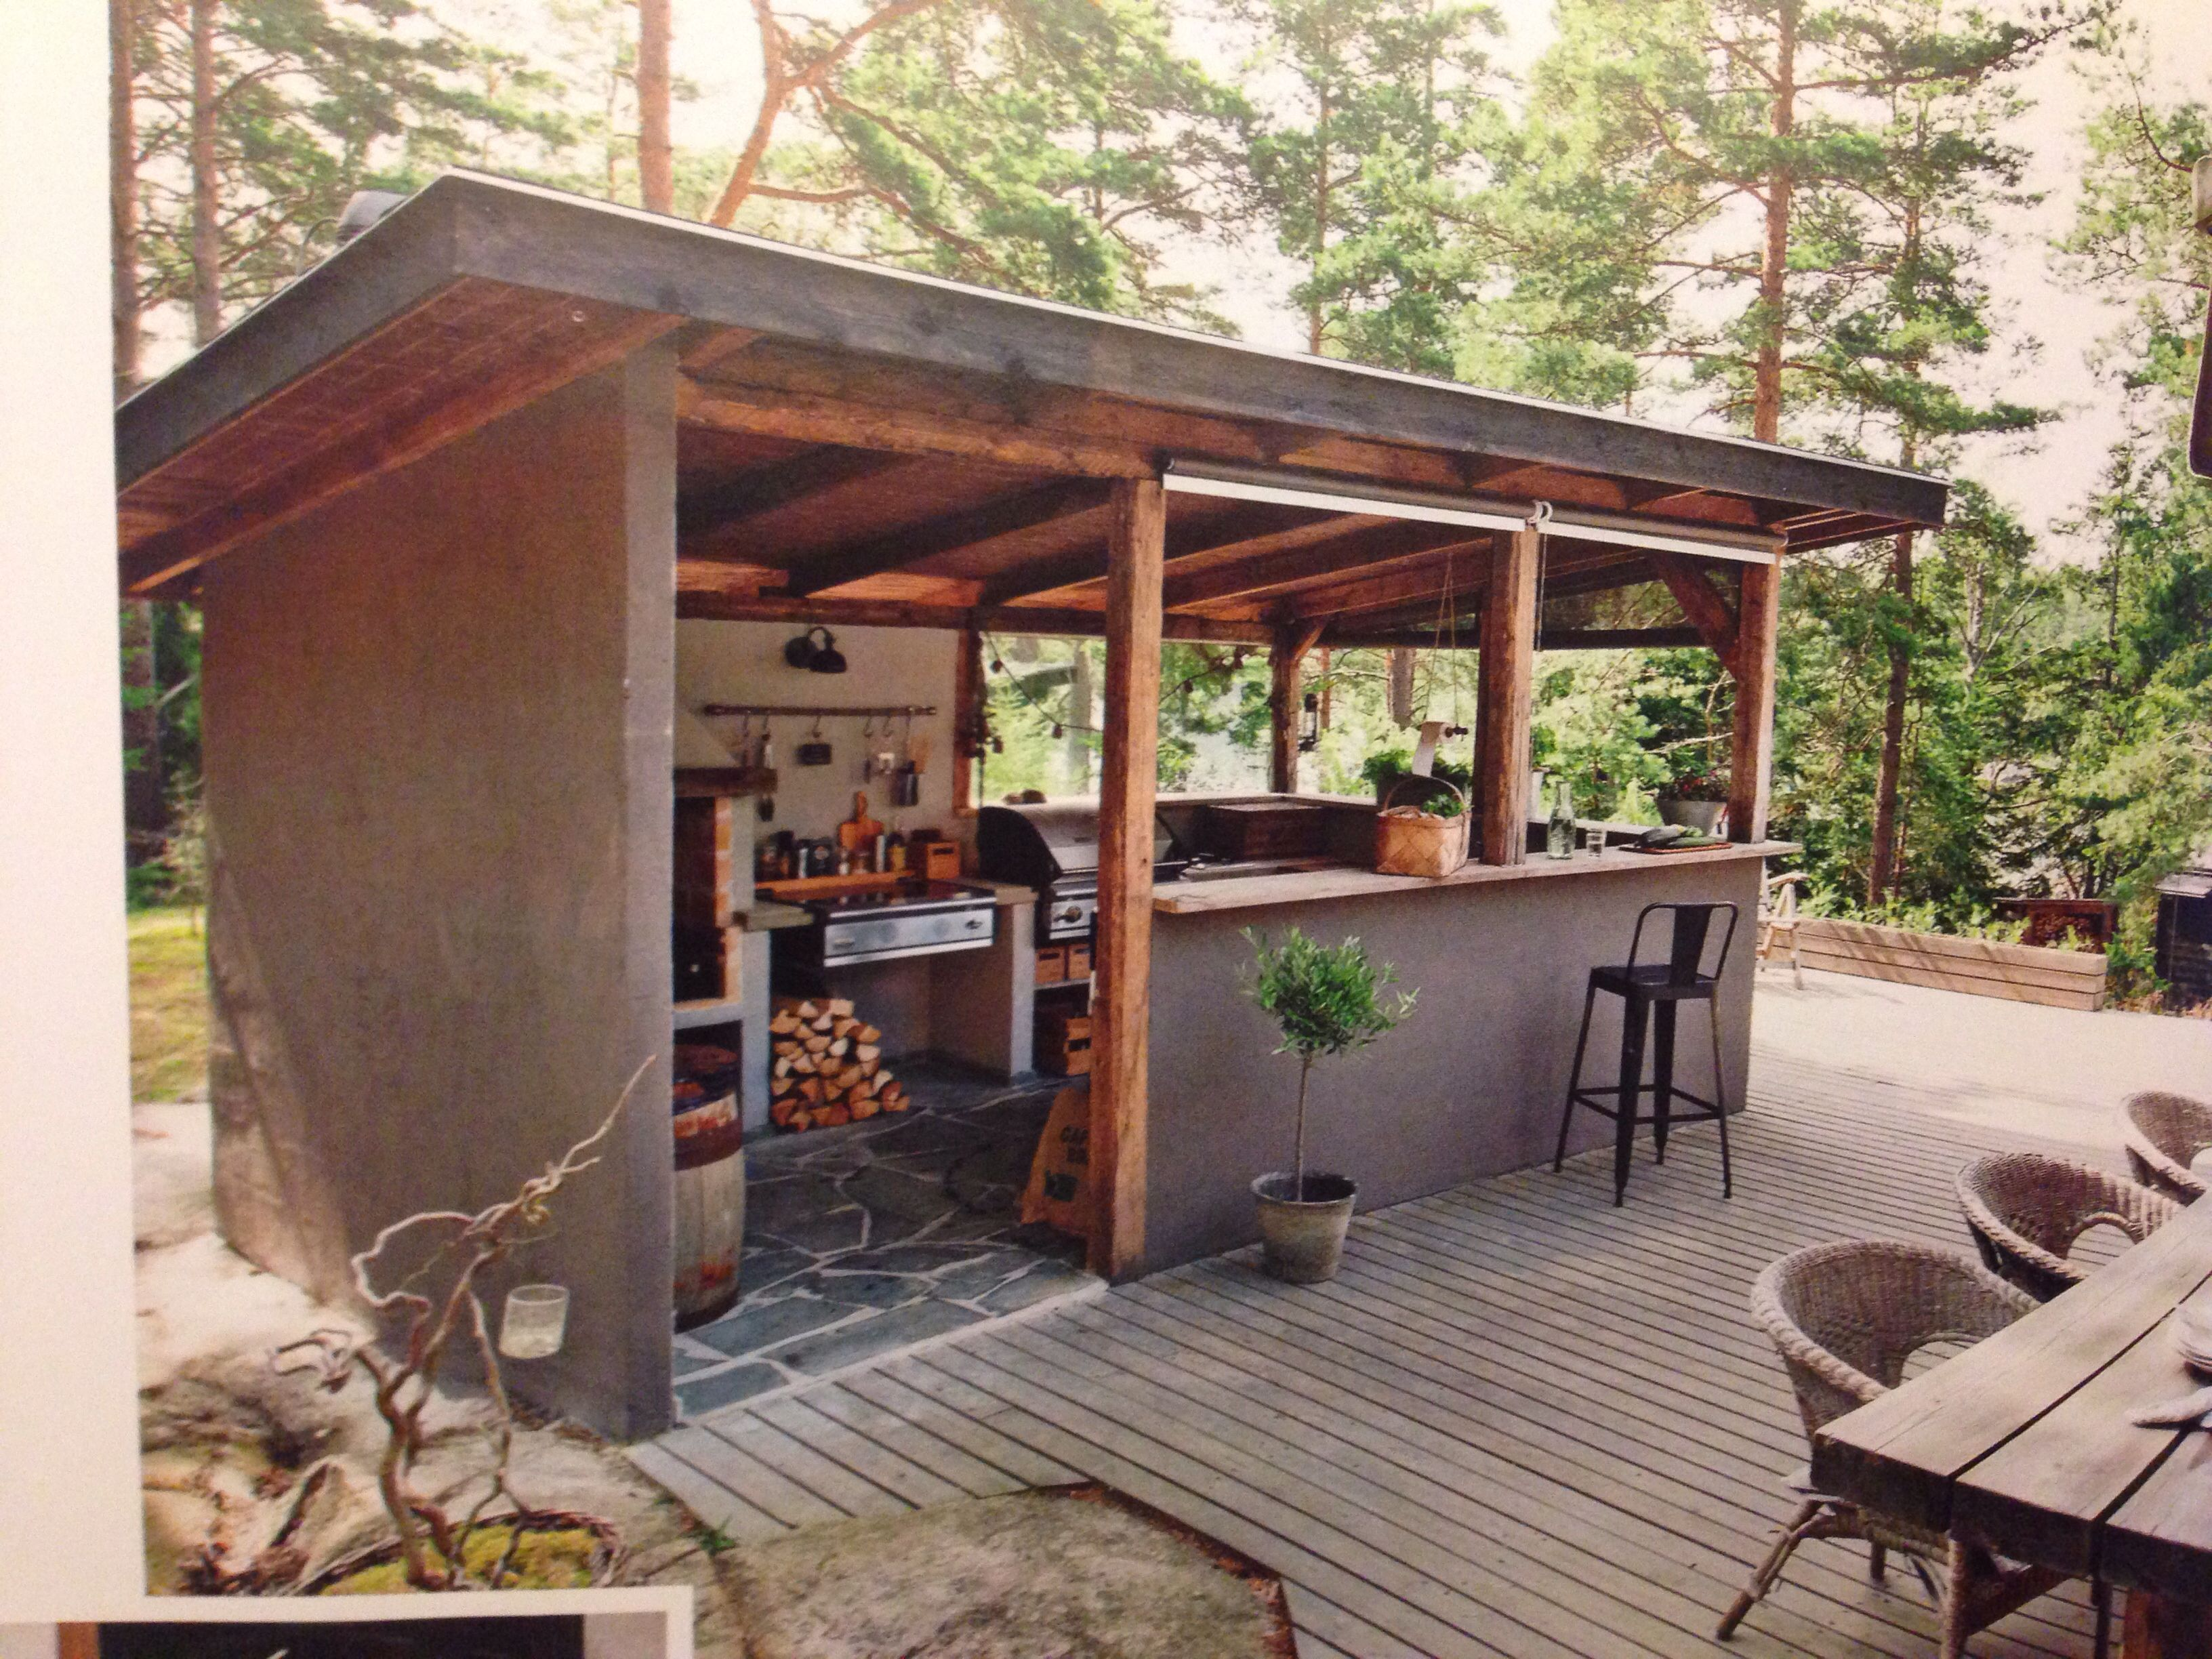 Enclosed outdoor kitchen | Kitchen Ideas for Outside in 2018 ...